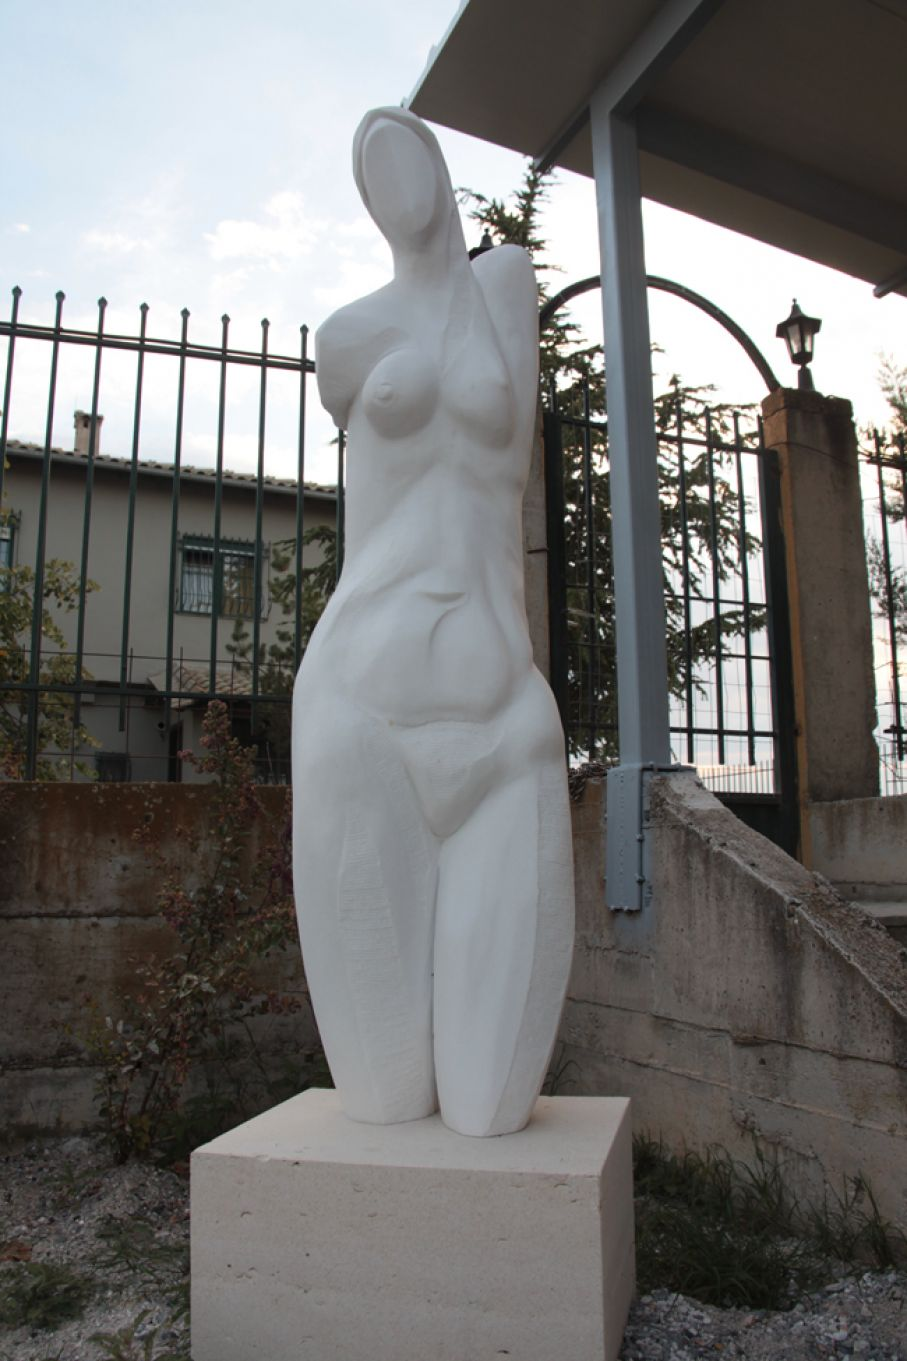 "Original marble sculpture of Paraskevas Magiras, completed on August 2013, within Myrό Antiques House premises, in Souroti, Thessaloniki, GREECE, as part of the Greek Marble Initiative, bearing the title ""Kormos"" (meaning ""body"", as well as ""tree"" in Greek). Dimensions: 196 X 55 X 42 cm (with its base)."